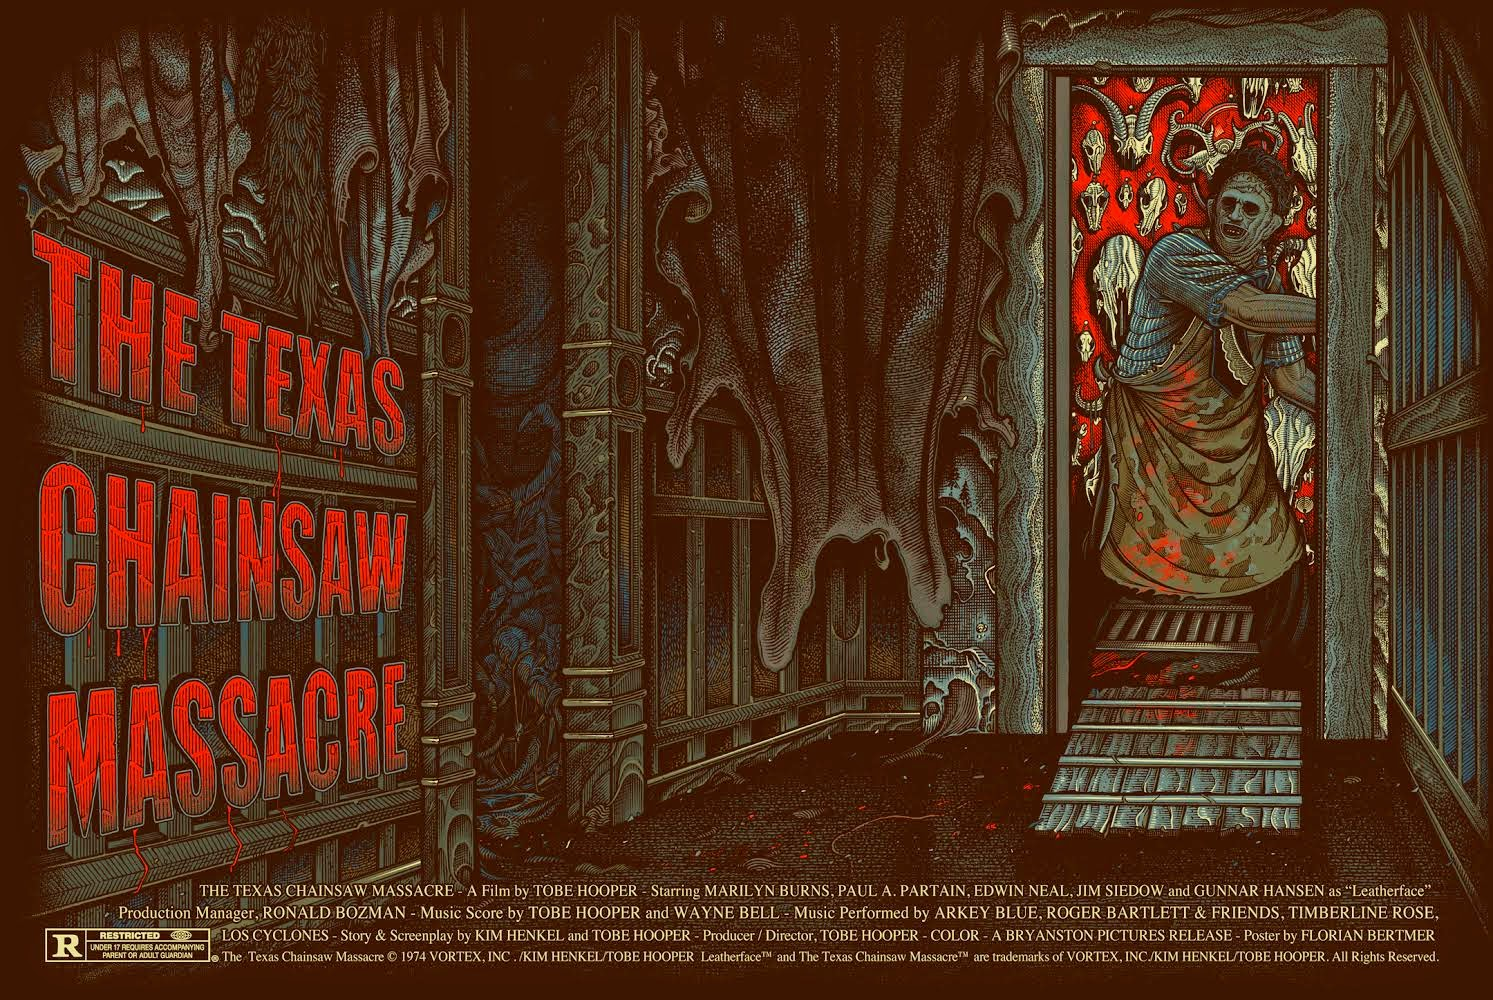 The Texas Chainsaw Massacre Regular Edition Screen Print by Florian Bertmer